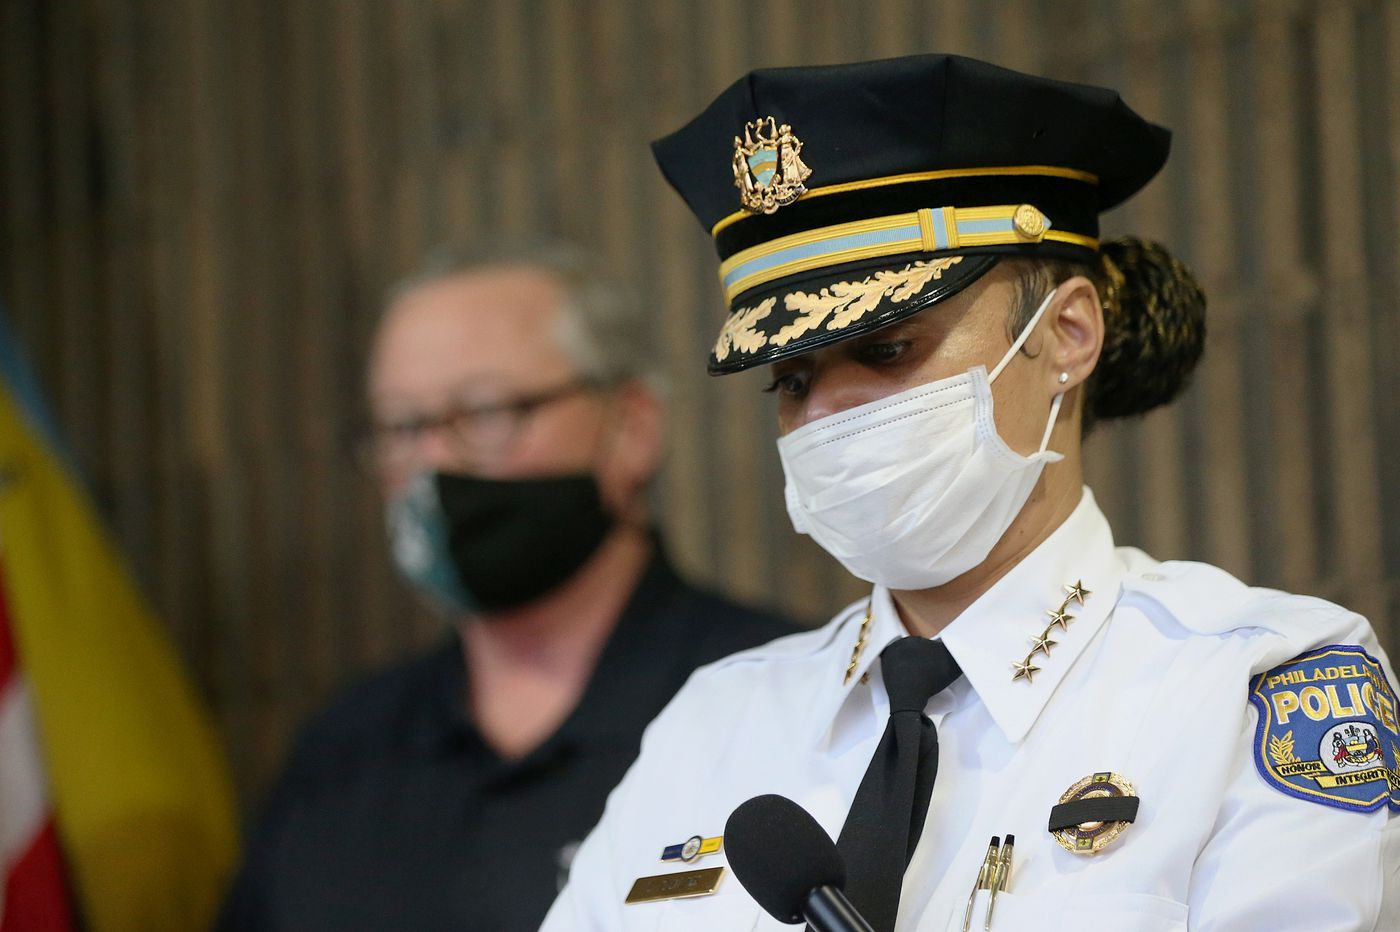 Philly Police Commissioner Danielle Outlaw was the target of racist threats, U.S. Attorney says